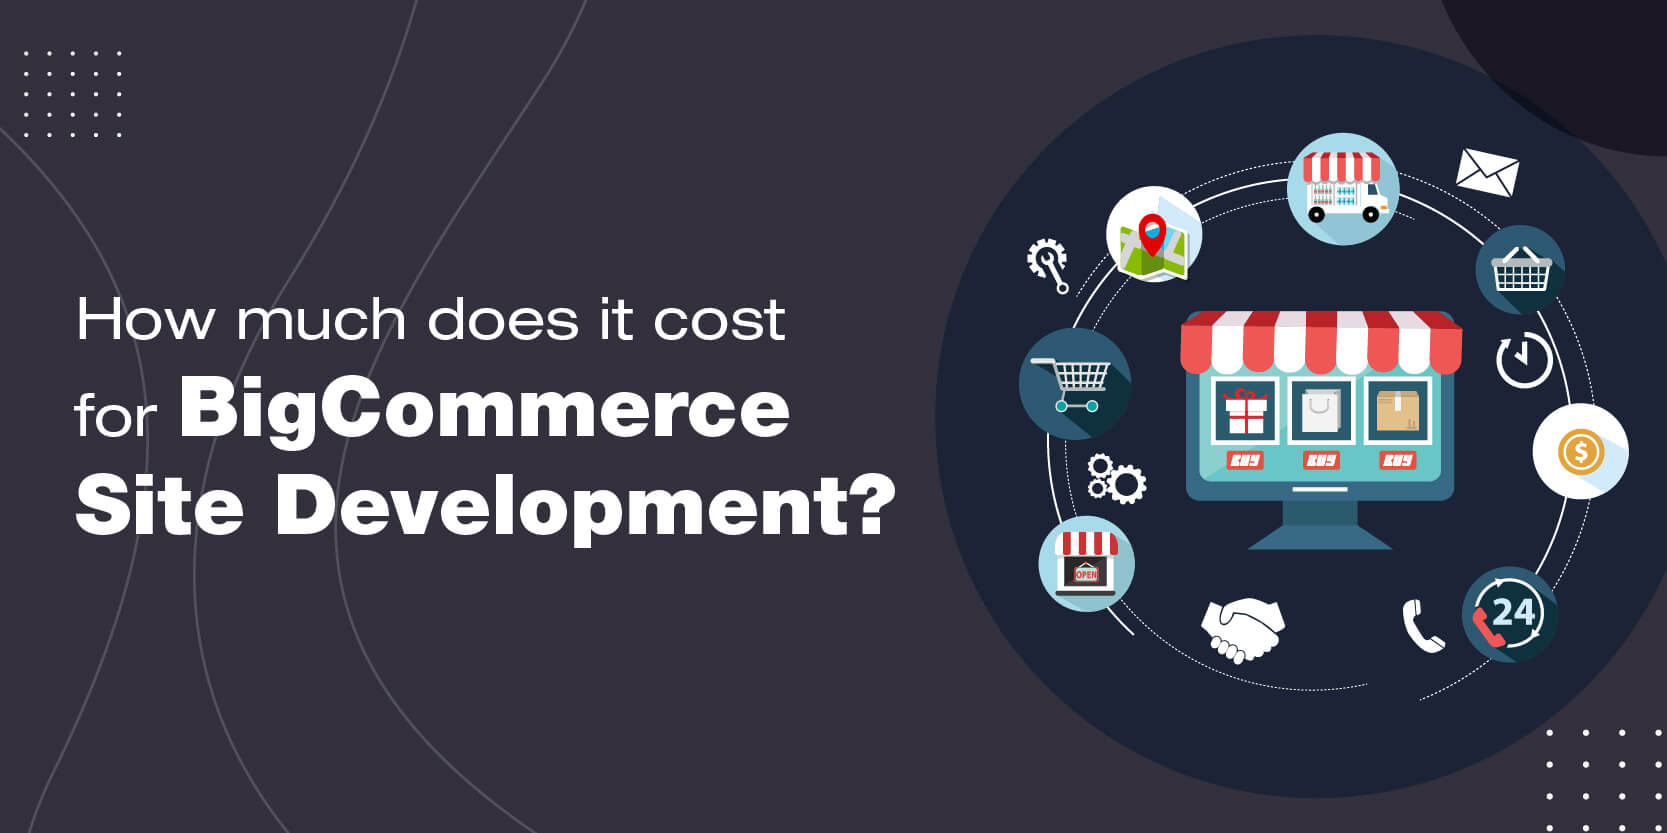 How much does it cost for BigCommerce site development?